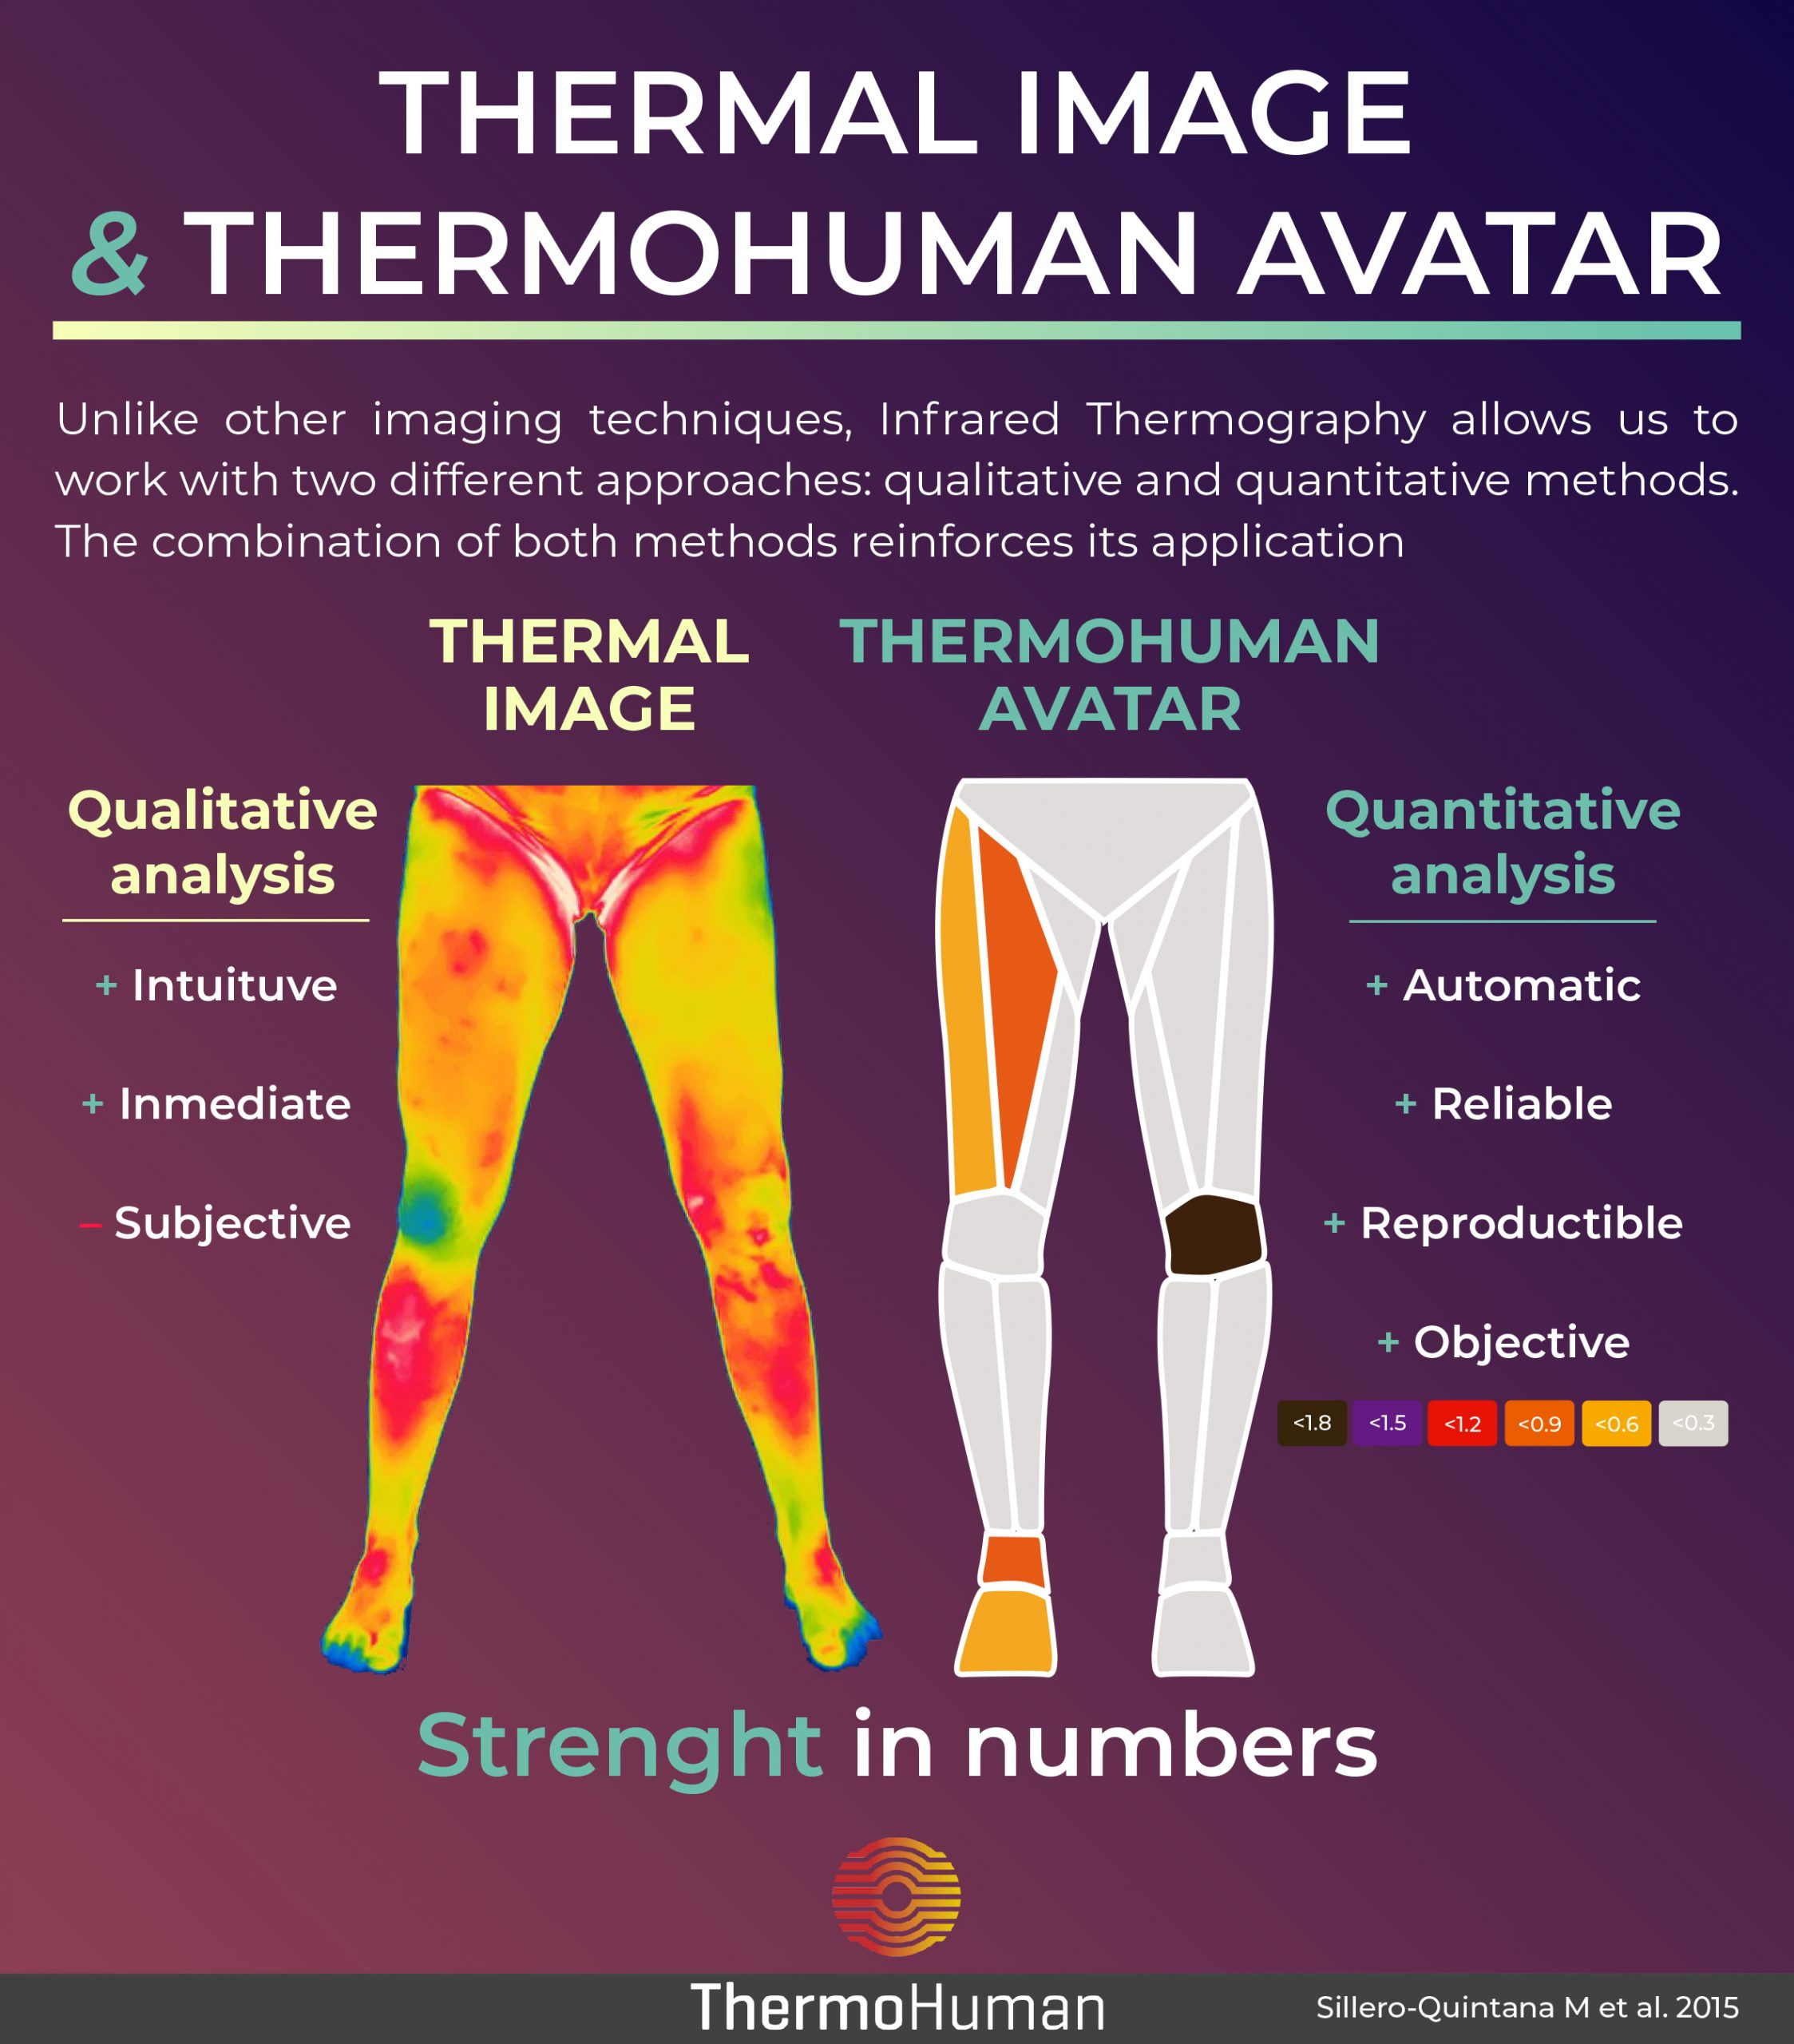 Thermal image & Thermohuman avatar